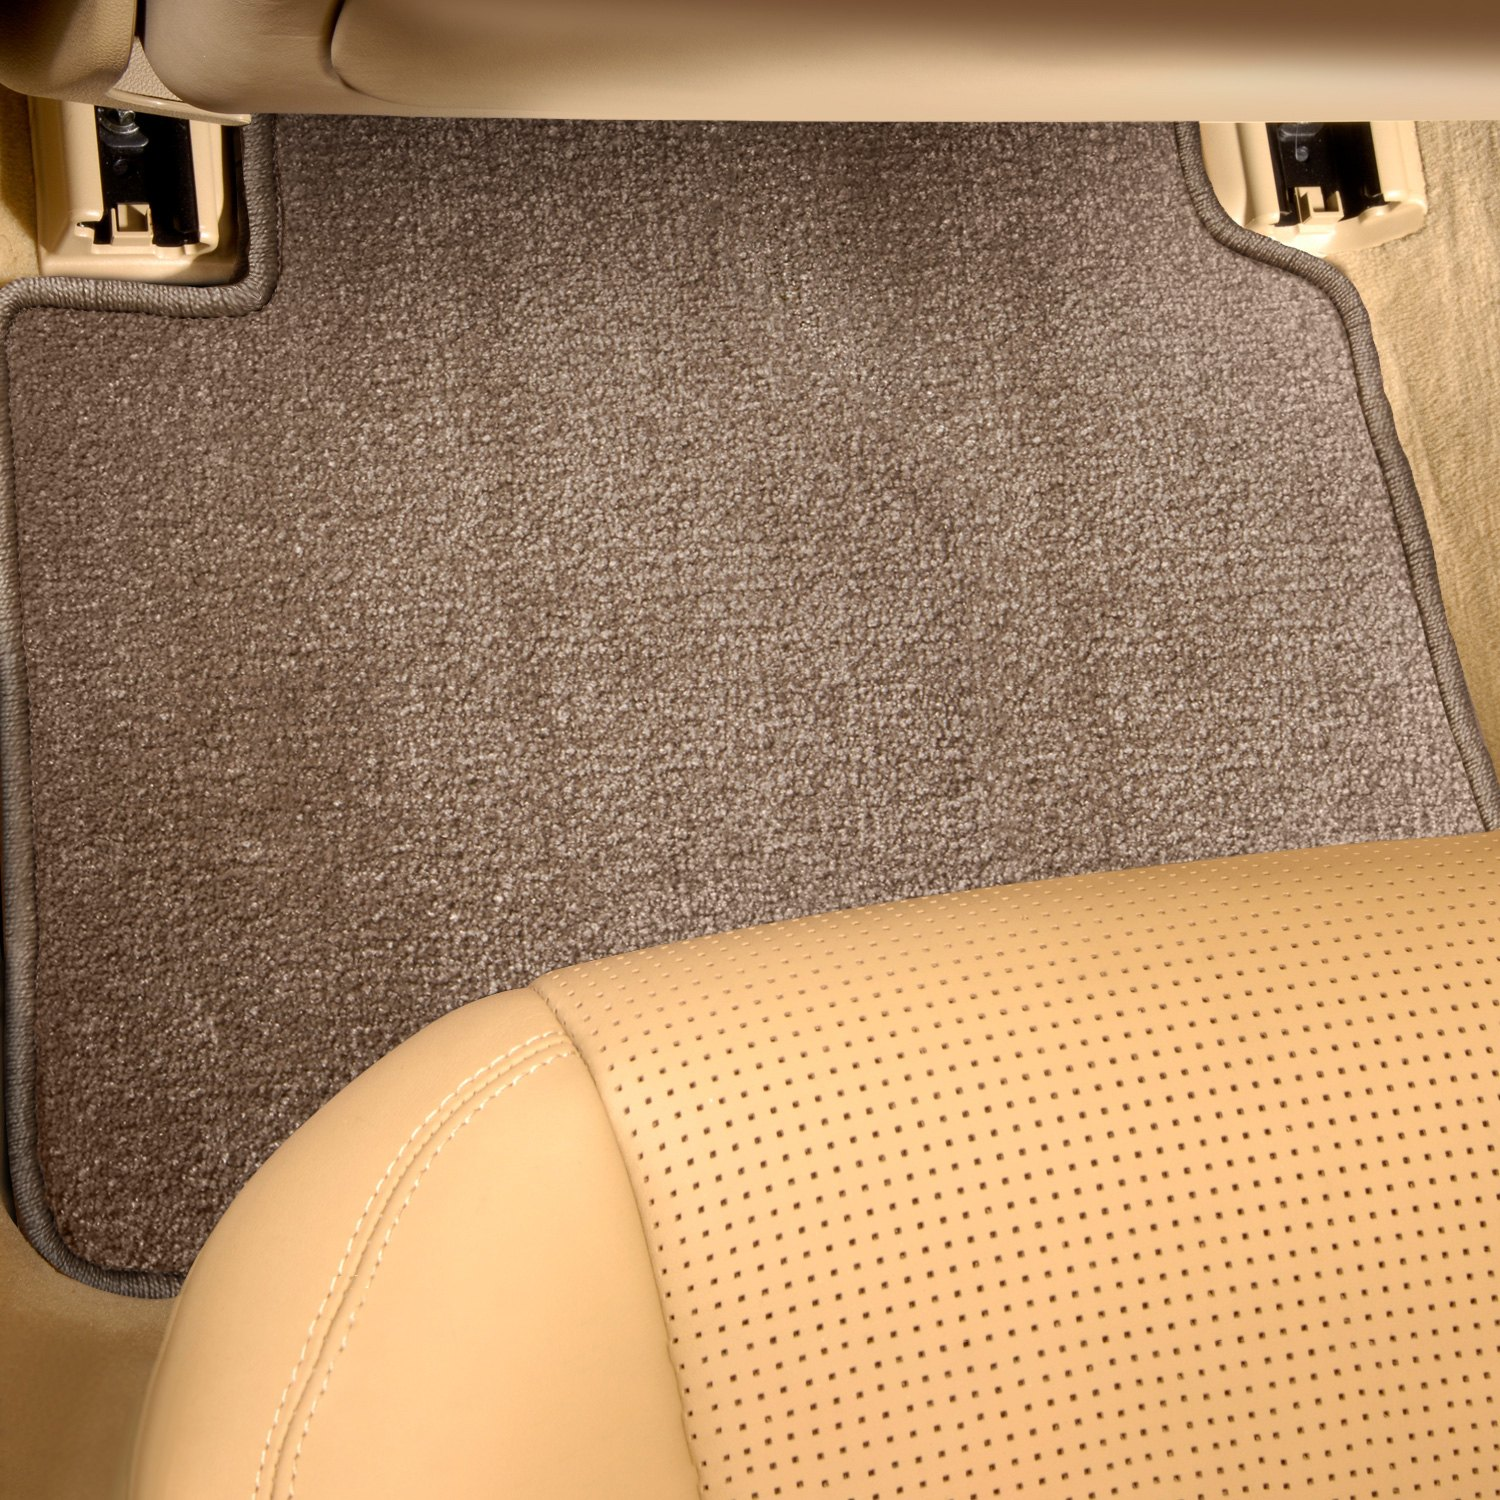 heavy rubber to set car all interior duty pattern tech piece headlight floor click auto enlarge bulbs semi zone black accessories weather mats gifts